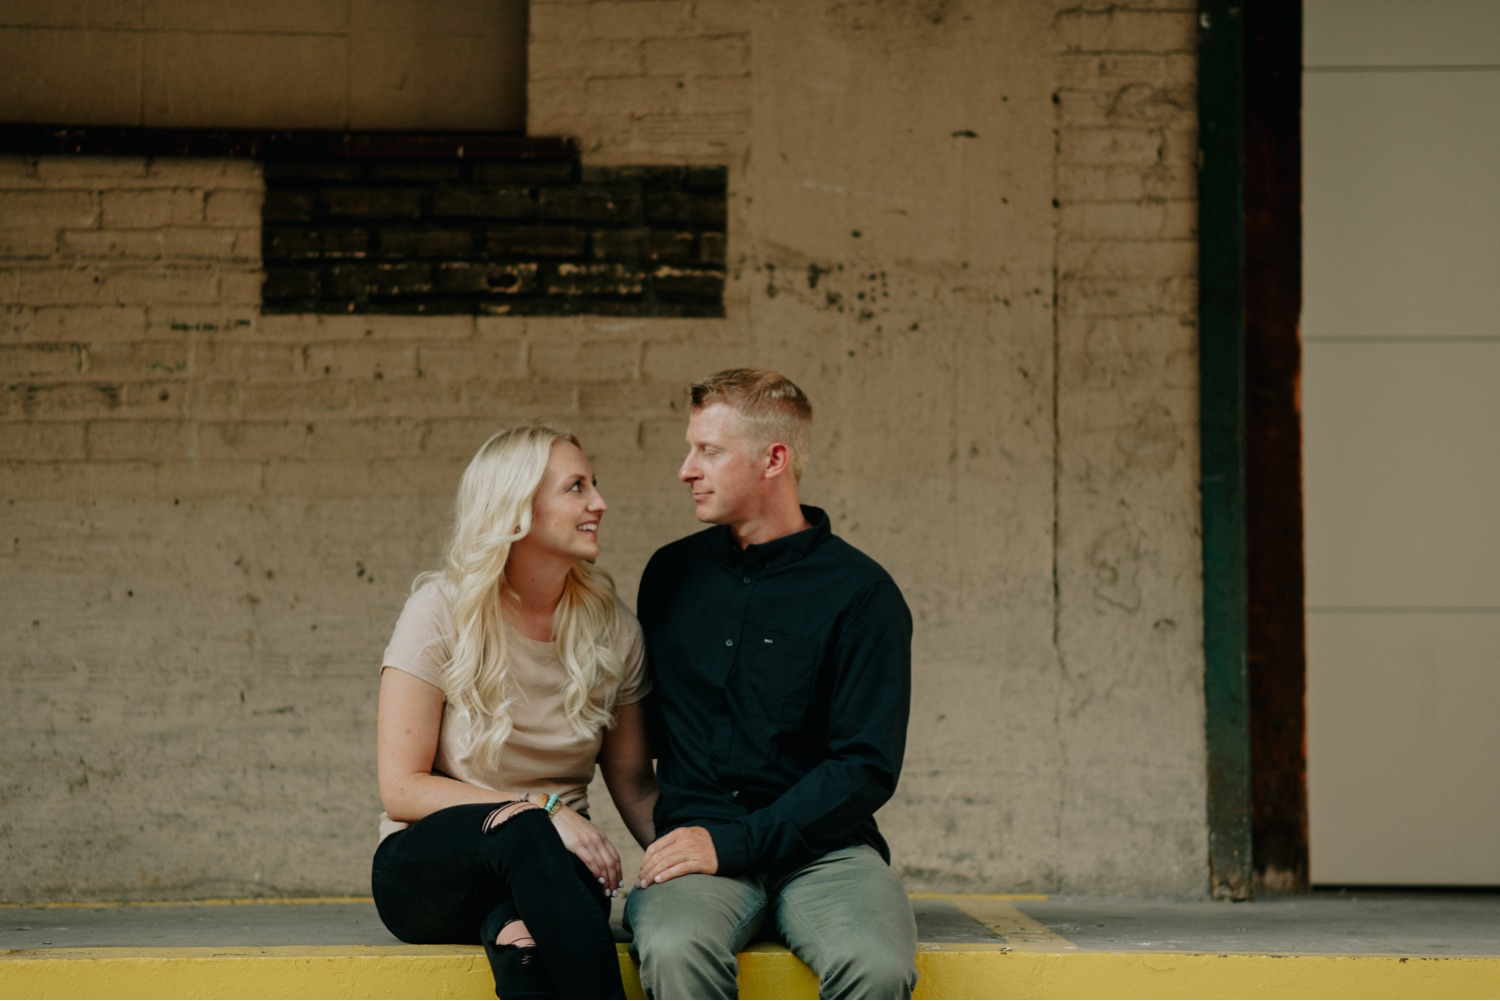 Urban engagement session warehouse district Minneapolis on a loading dock